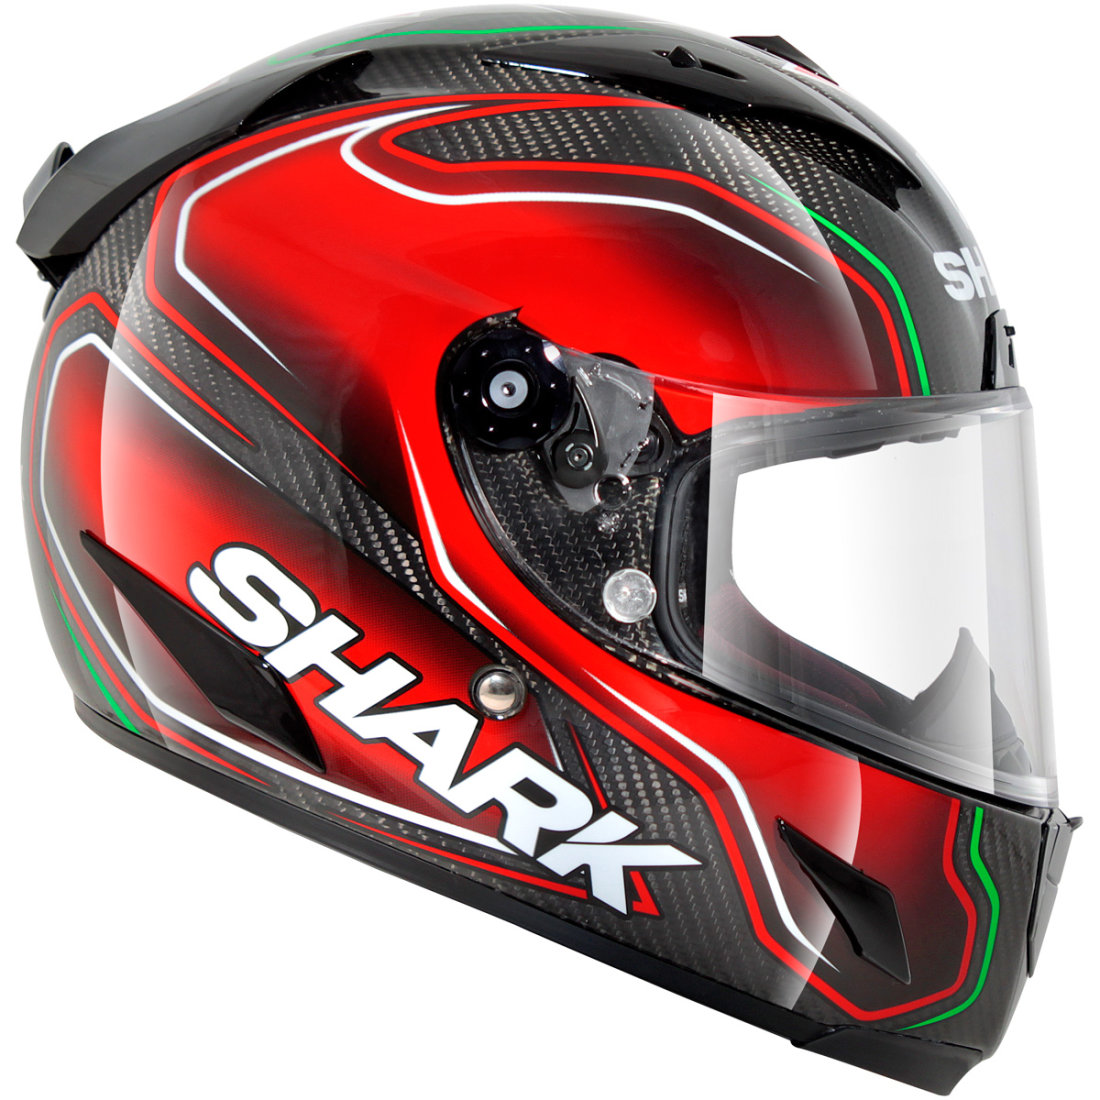 Casque - Page 35 Race_r_pro_carbon_guintoli_black_red_green_drg-1-M-06393651-xlarge